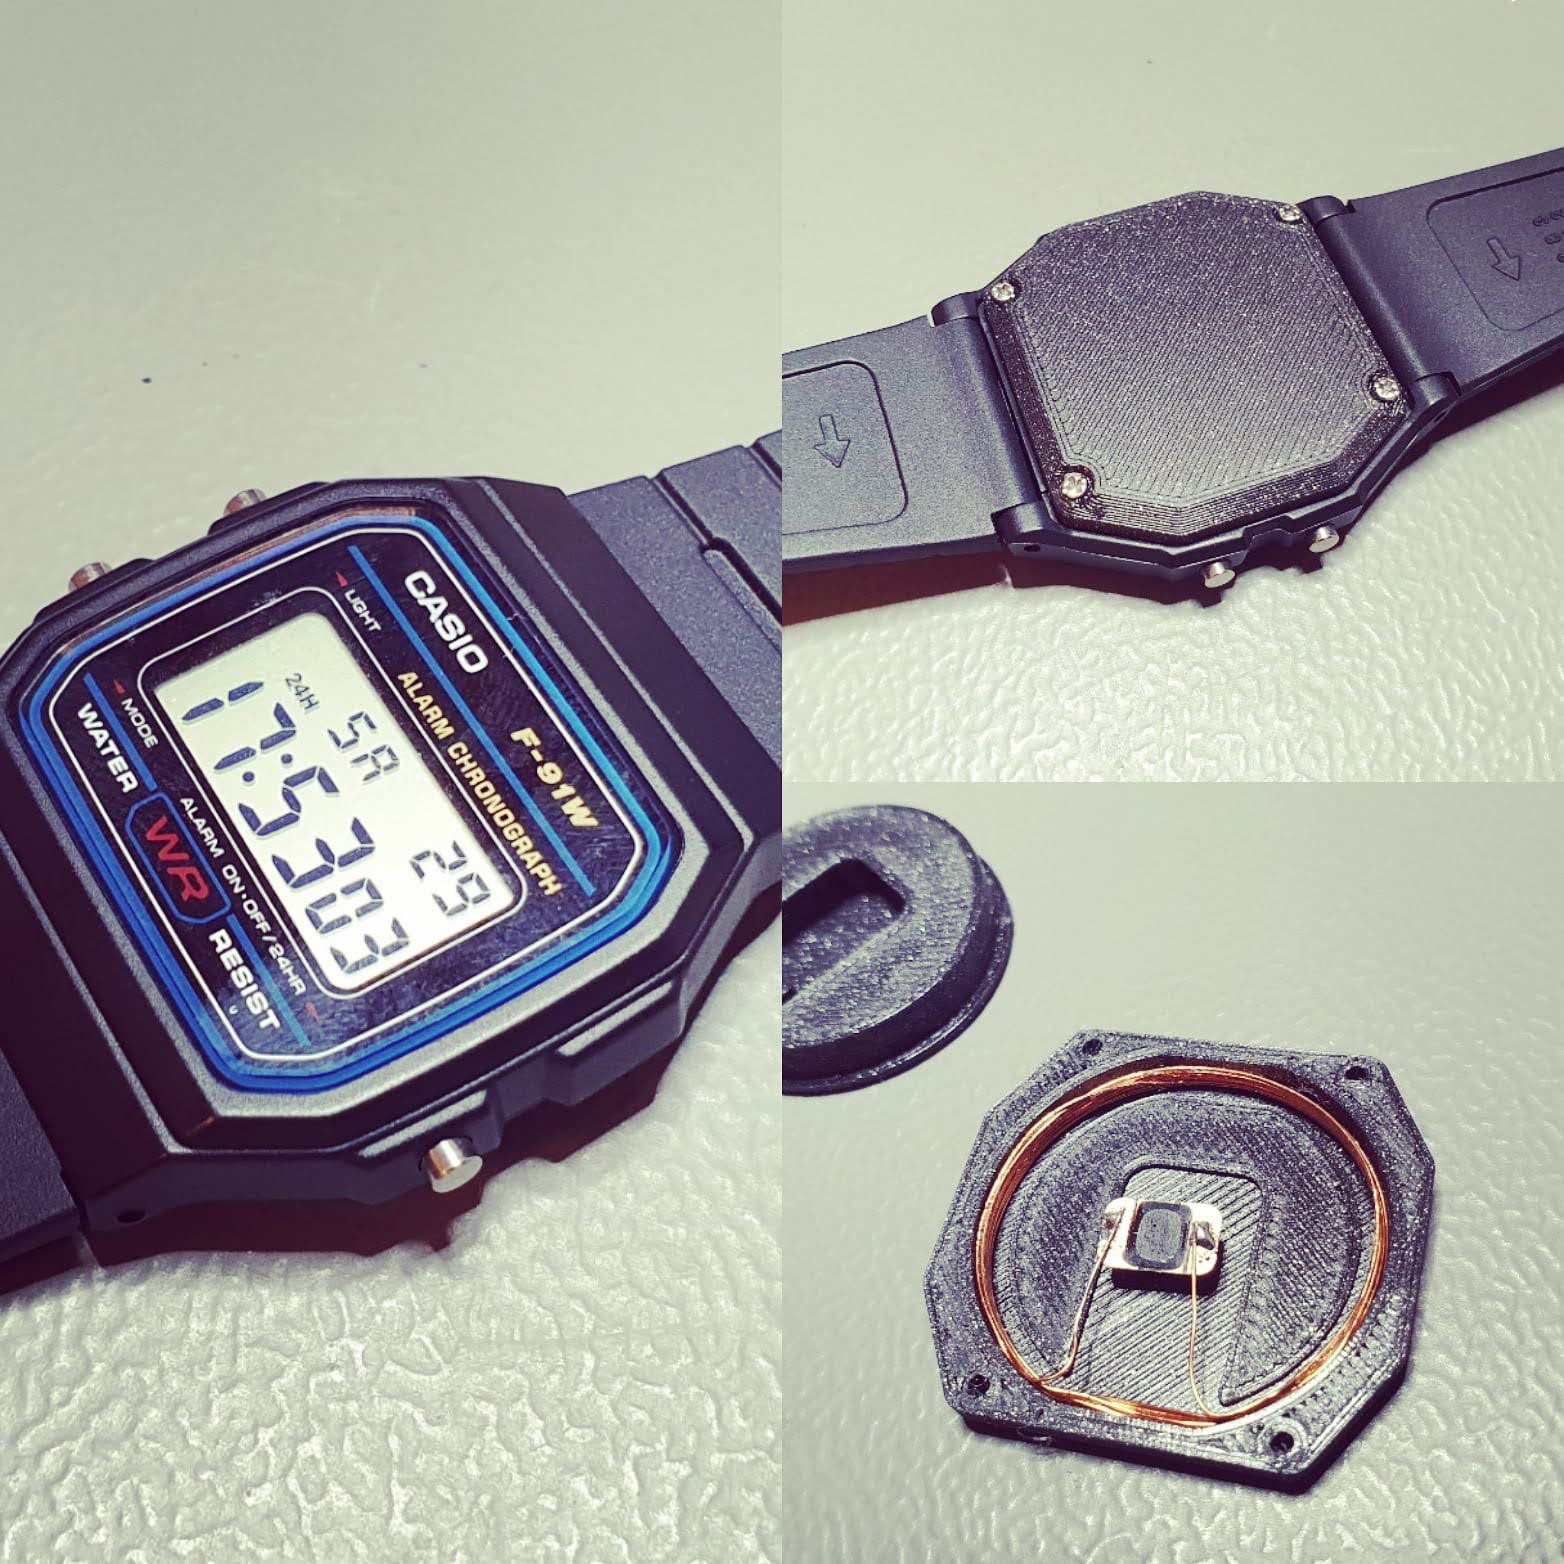 Casio Watch Tesla key